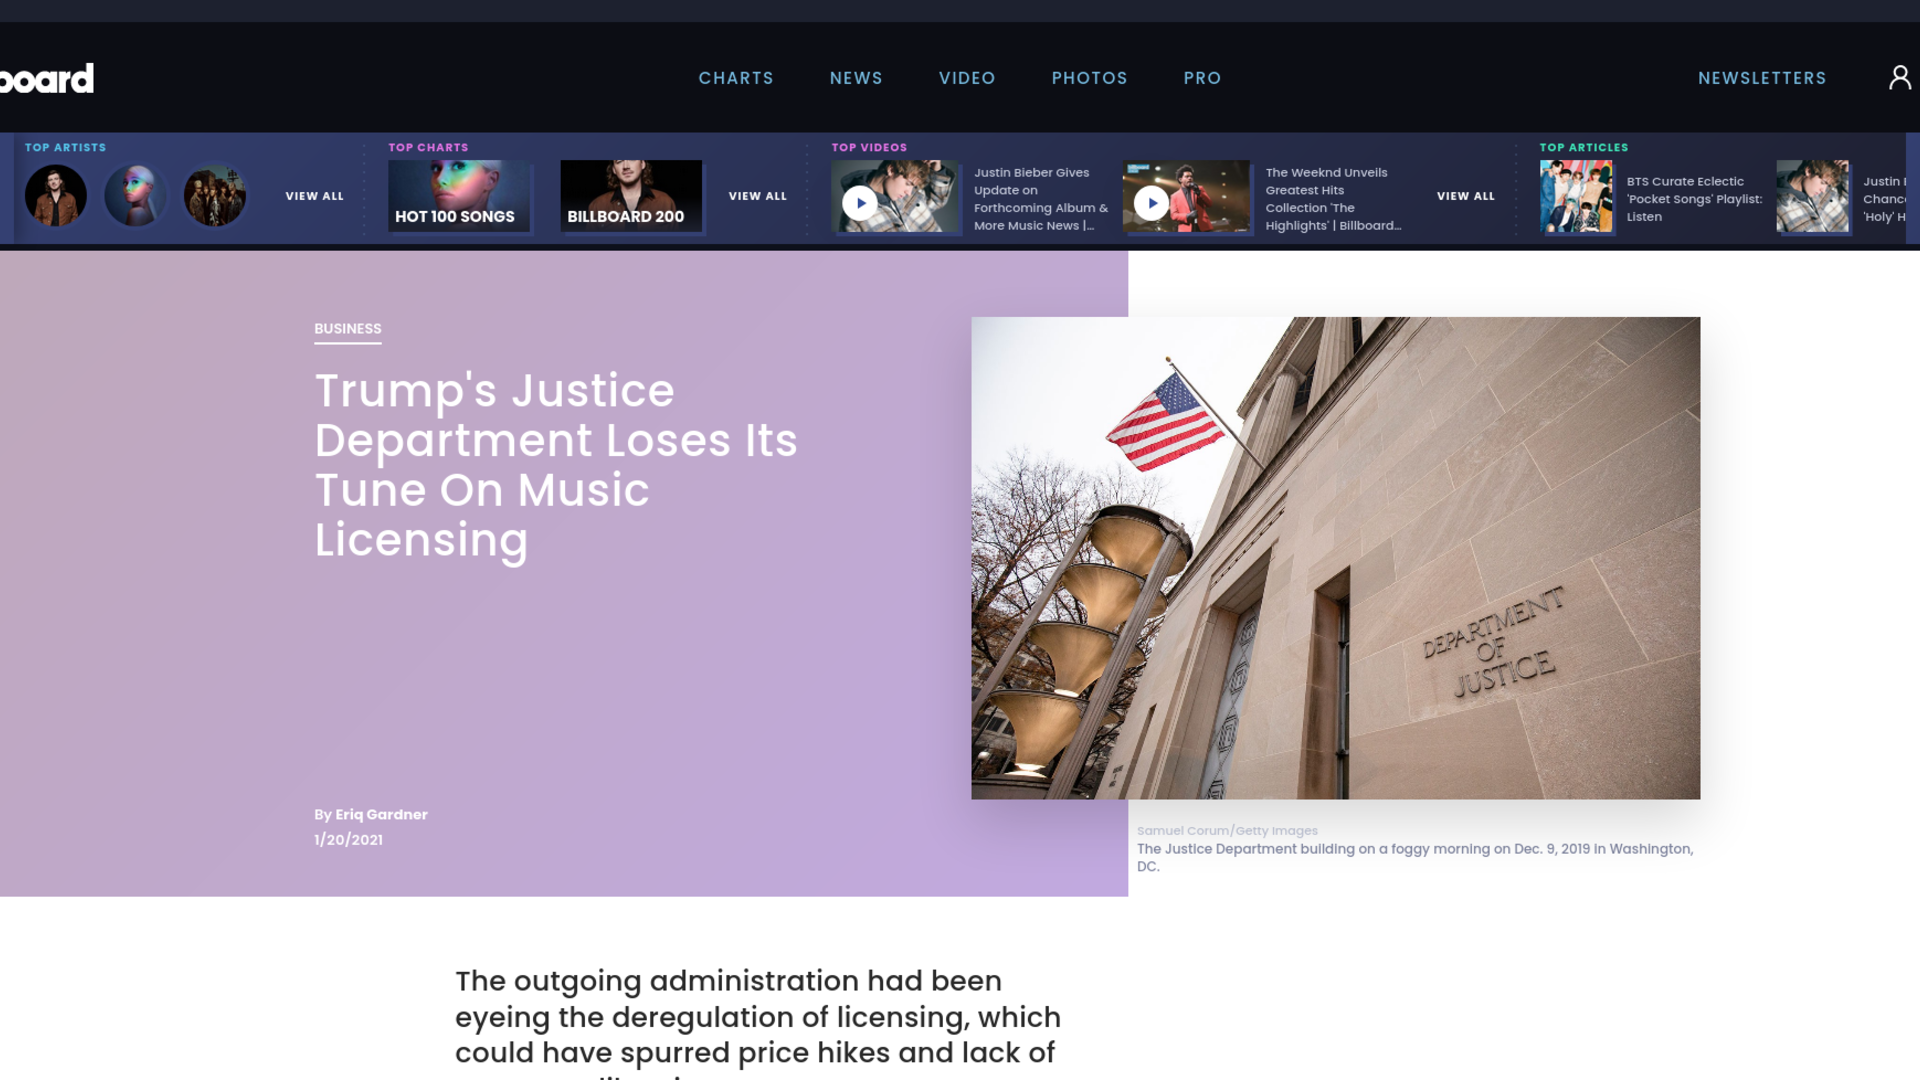 Fairness Rocks News Trump's Justice Department Loses Its Tune On Music Licensing